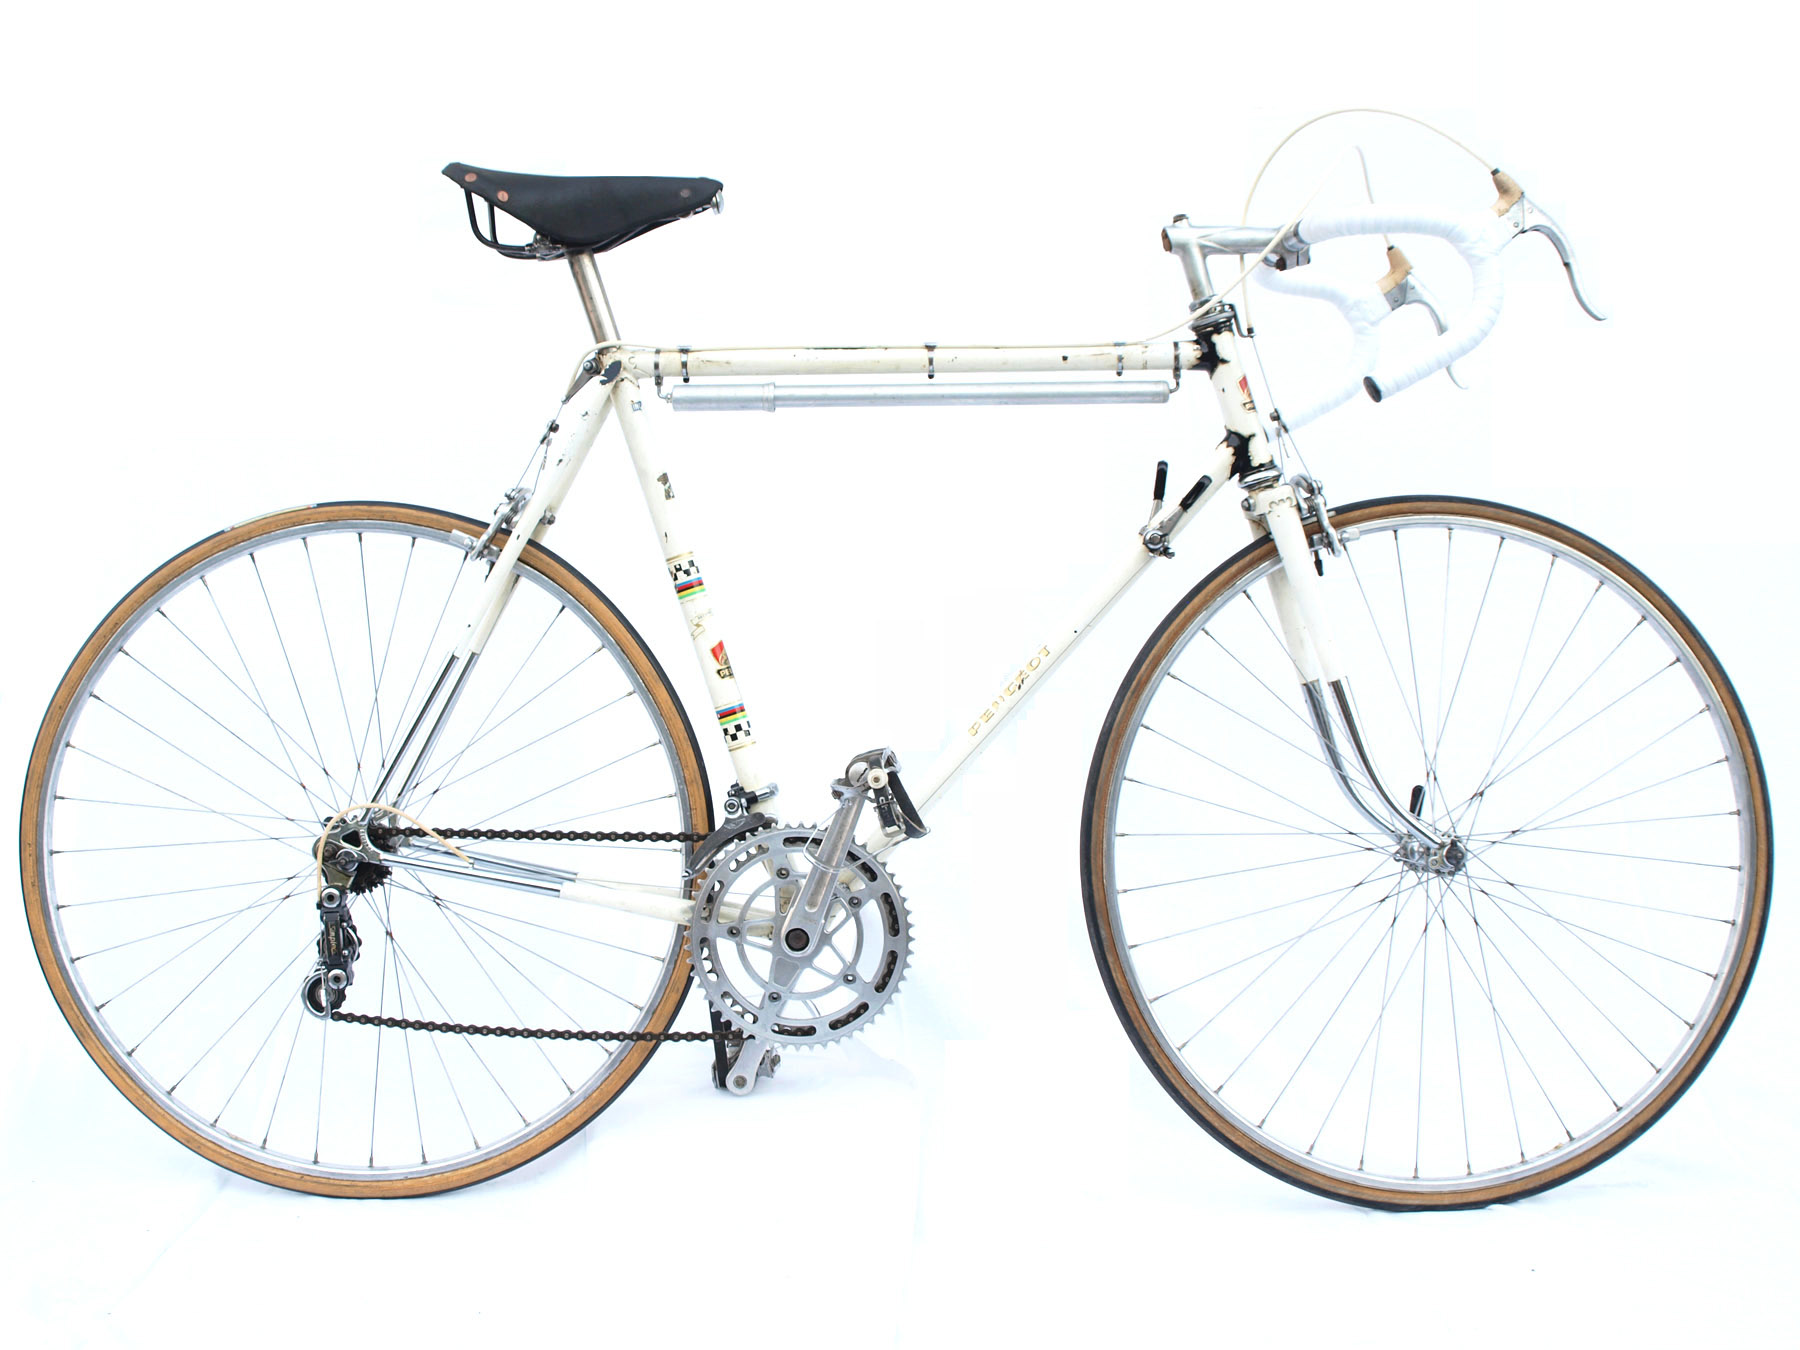 Velovilles | PX 10 | Vintage bikes and bicycle parts